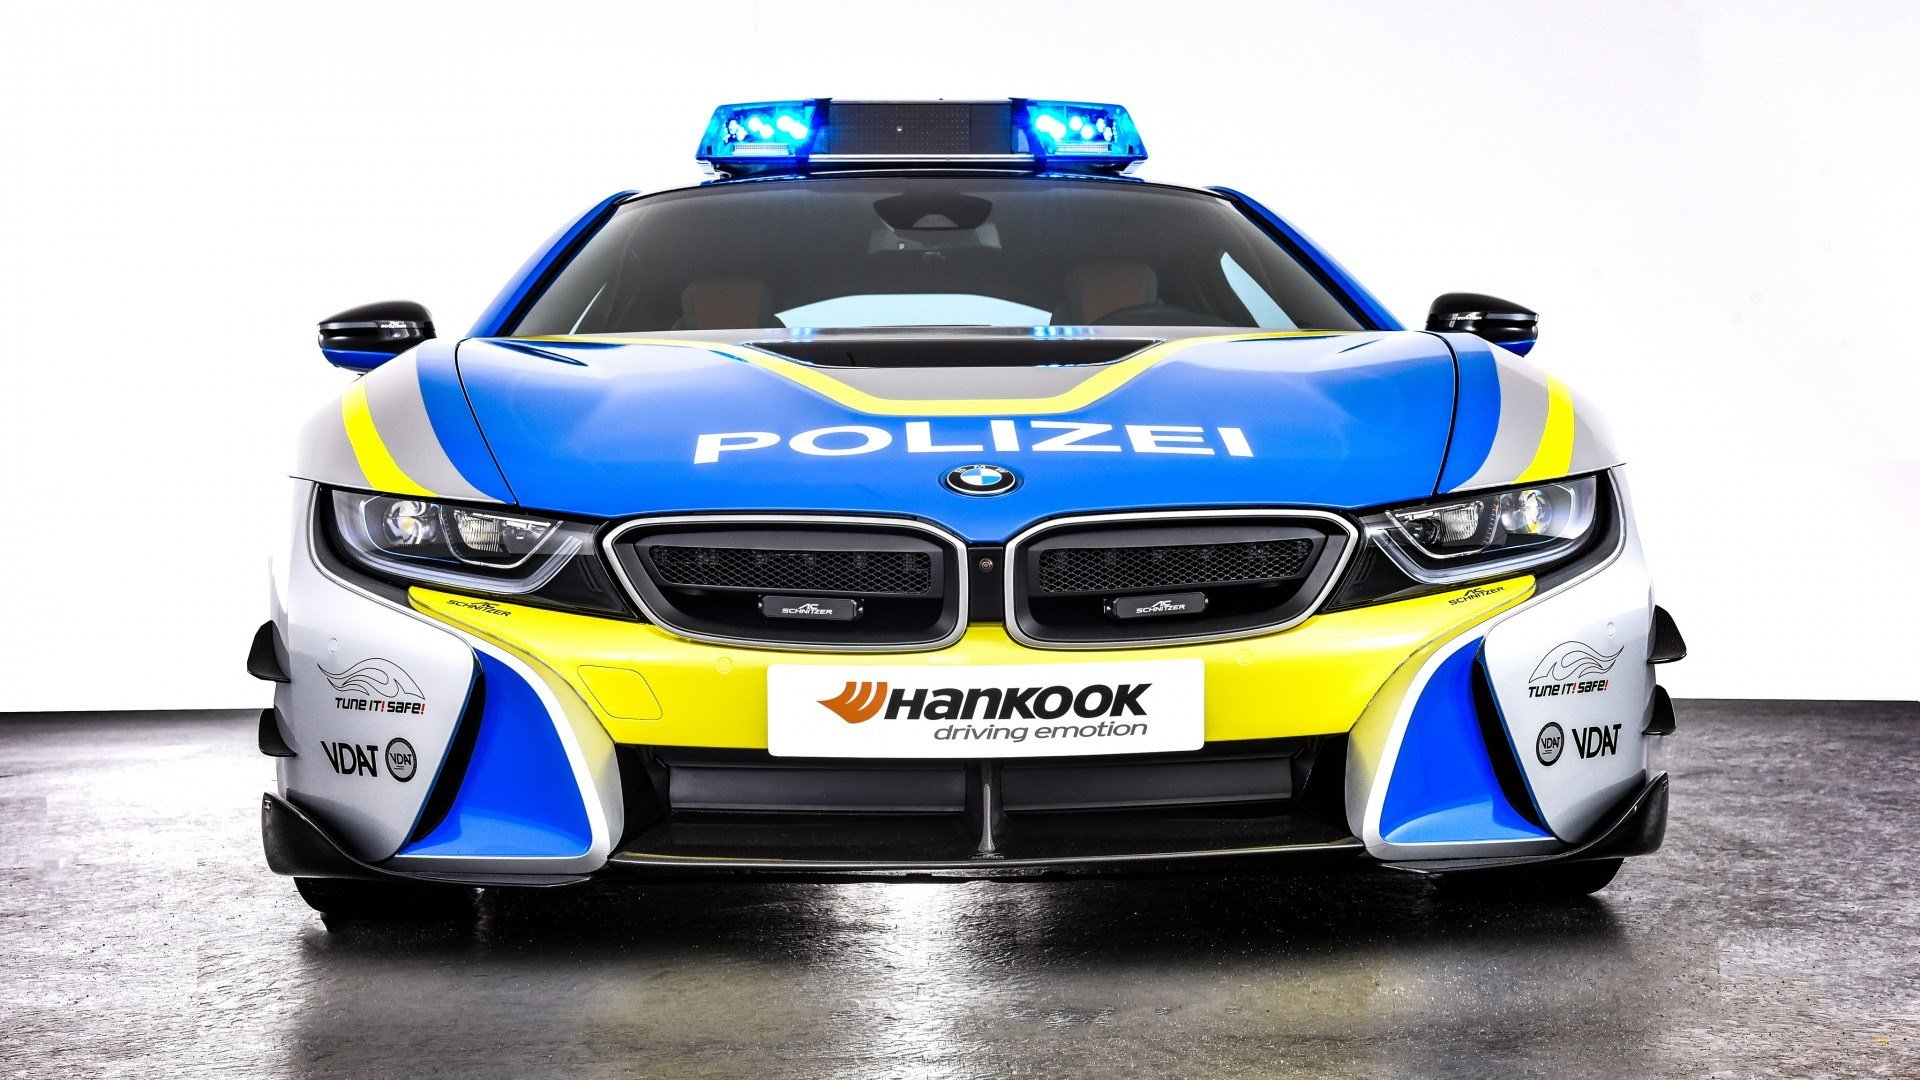 Latest Ac Schnitzer Bmw I8 Polizei Tune It Safe Concept 2019 4K 2 Free Download